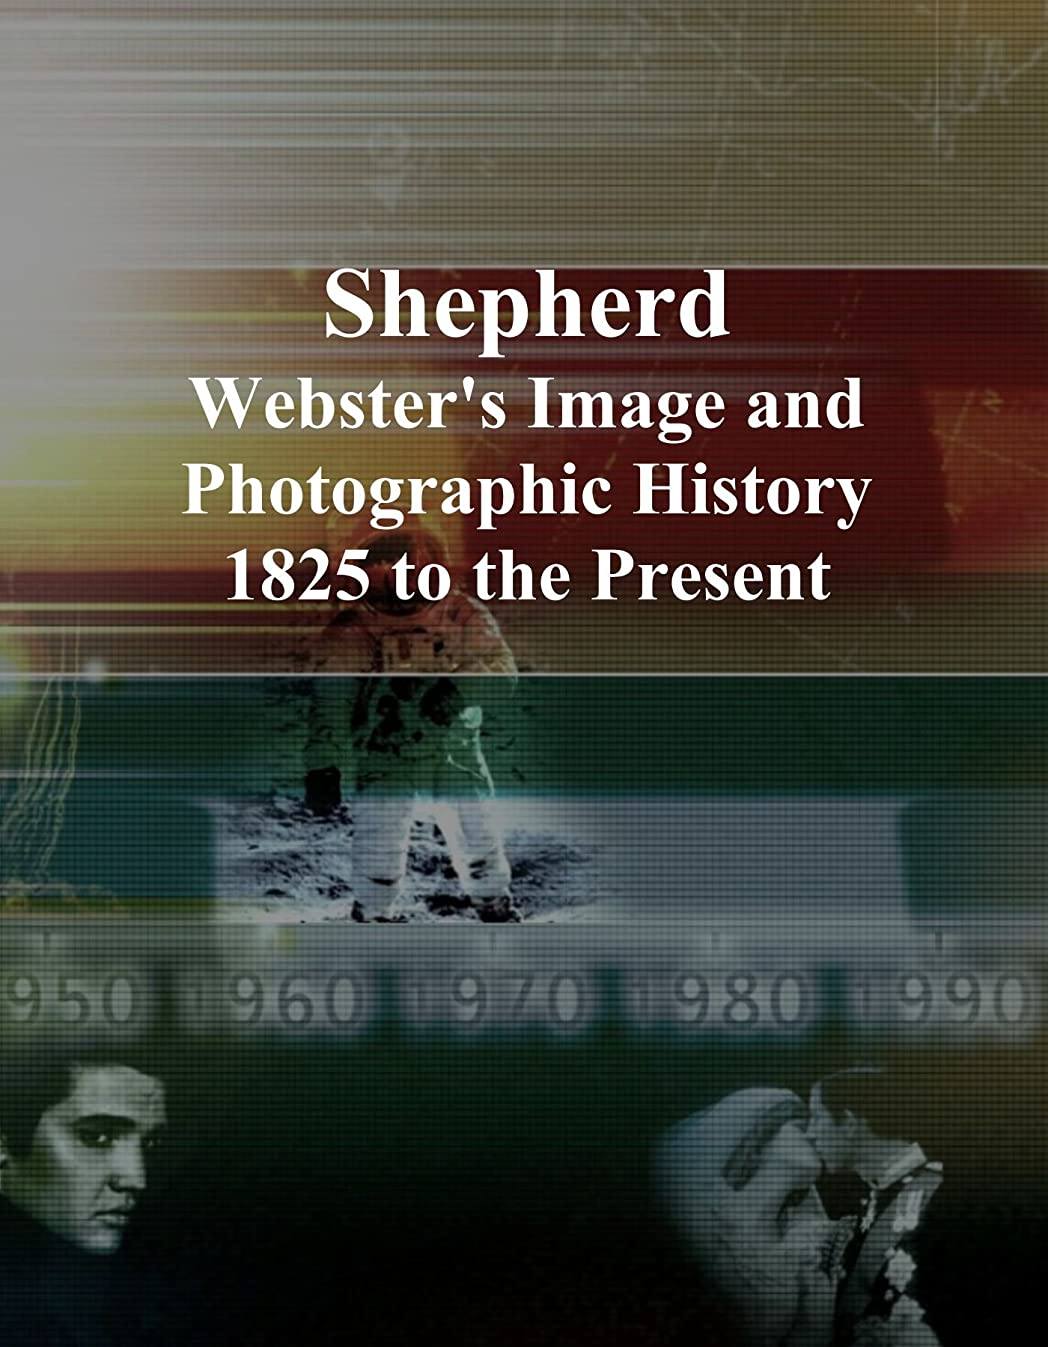 等しい証言ずるいShepherd: Webster's Image and Photographic History, 1825 to the Present